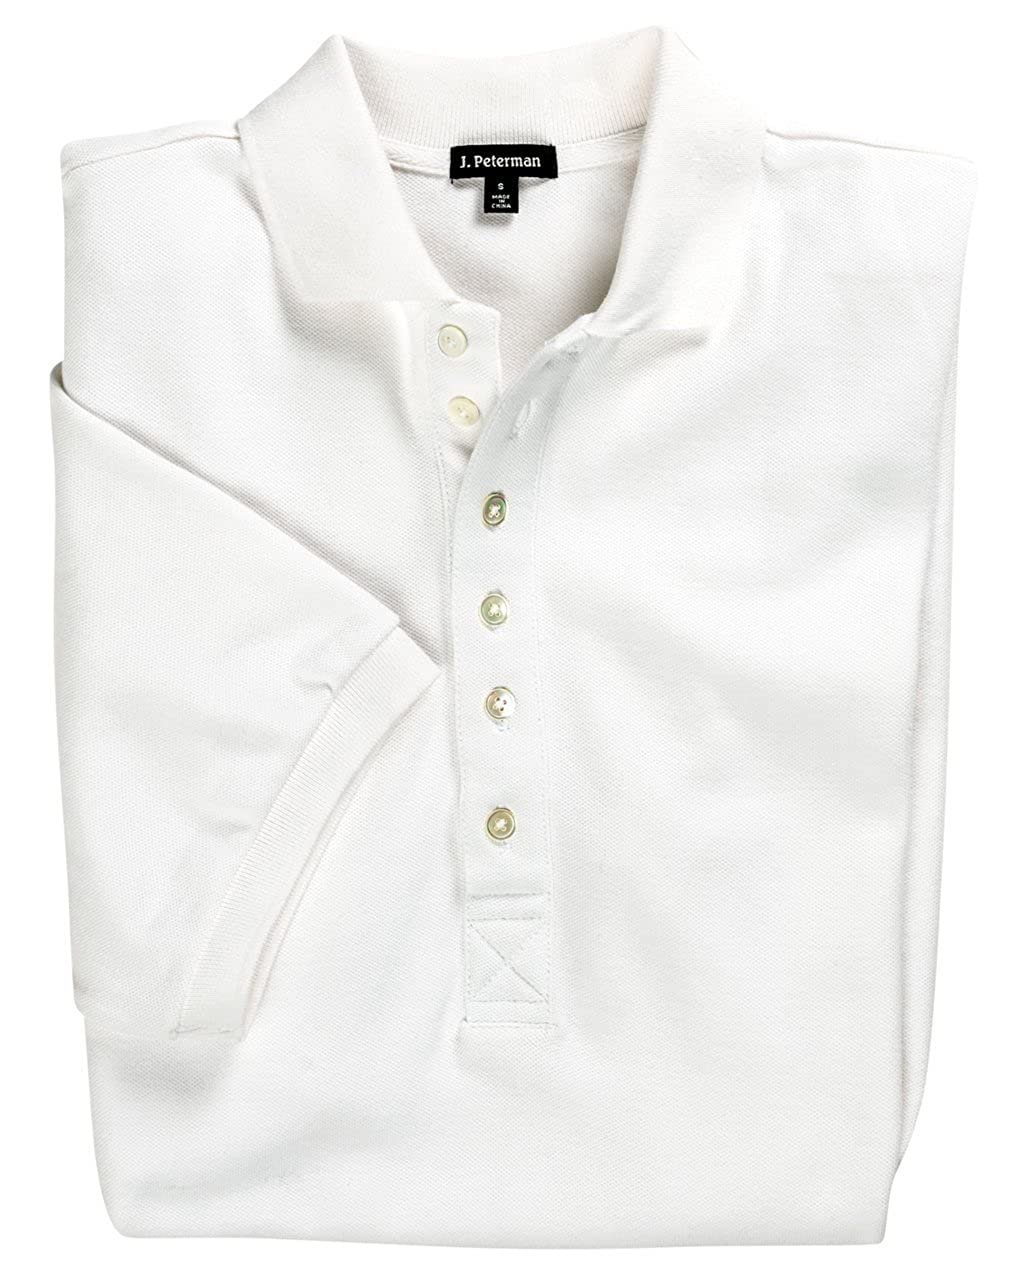 1930s Style Mens Shirts The Original Polo Shirt $55.20 AT vintagedancer.com